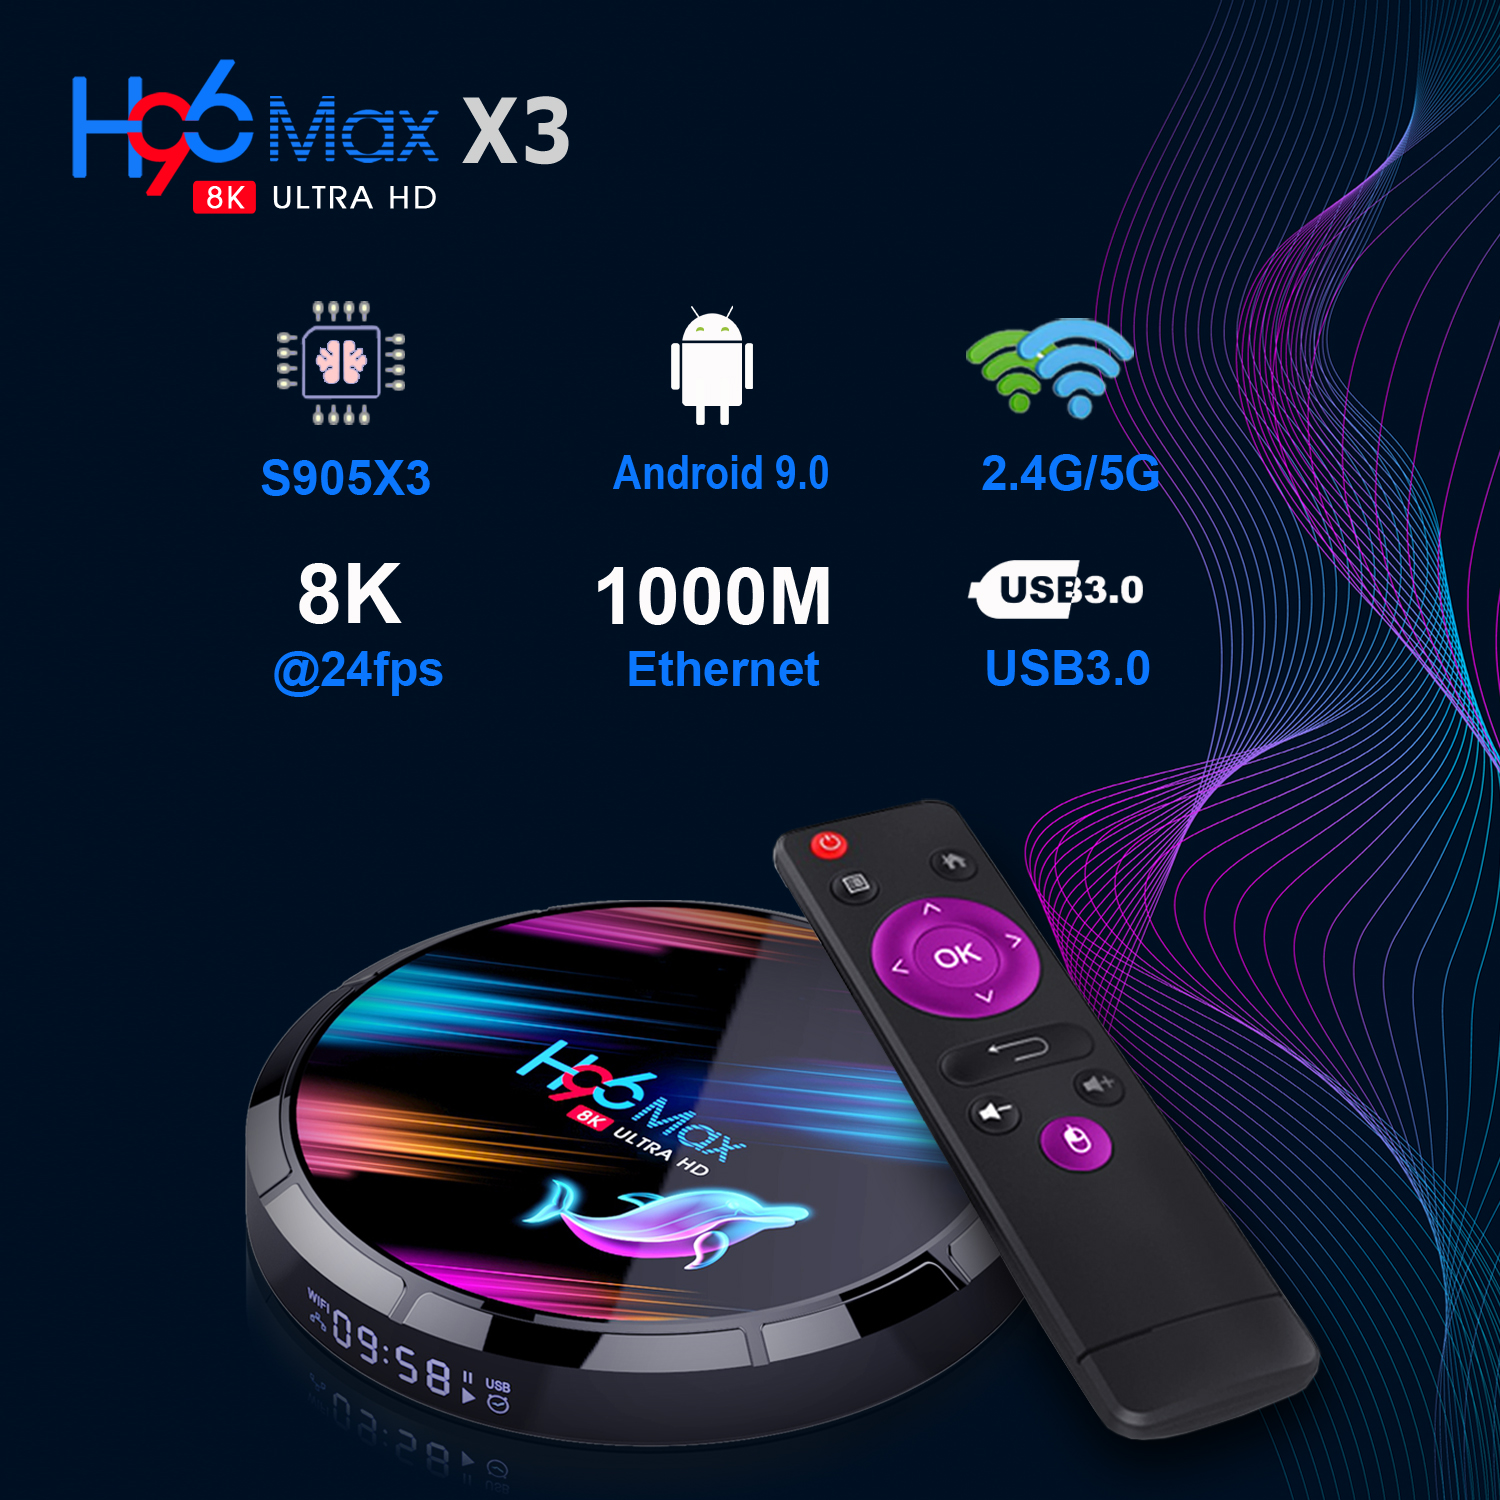 H96 Max X3 S905X3 8K ULTRA HD TV Box 4GB RAM + eMMC 32GB/ 64GB/ 128GB ROM 2.4G/5G WIFI 1000M Ethernet 9.0 Android Box 0